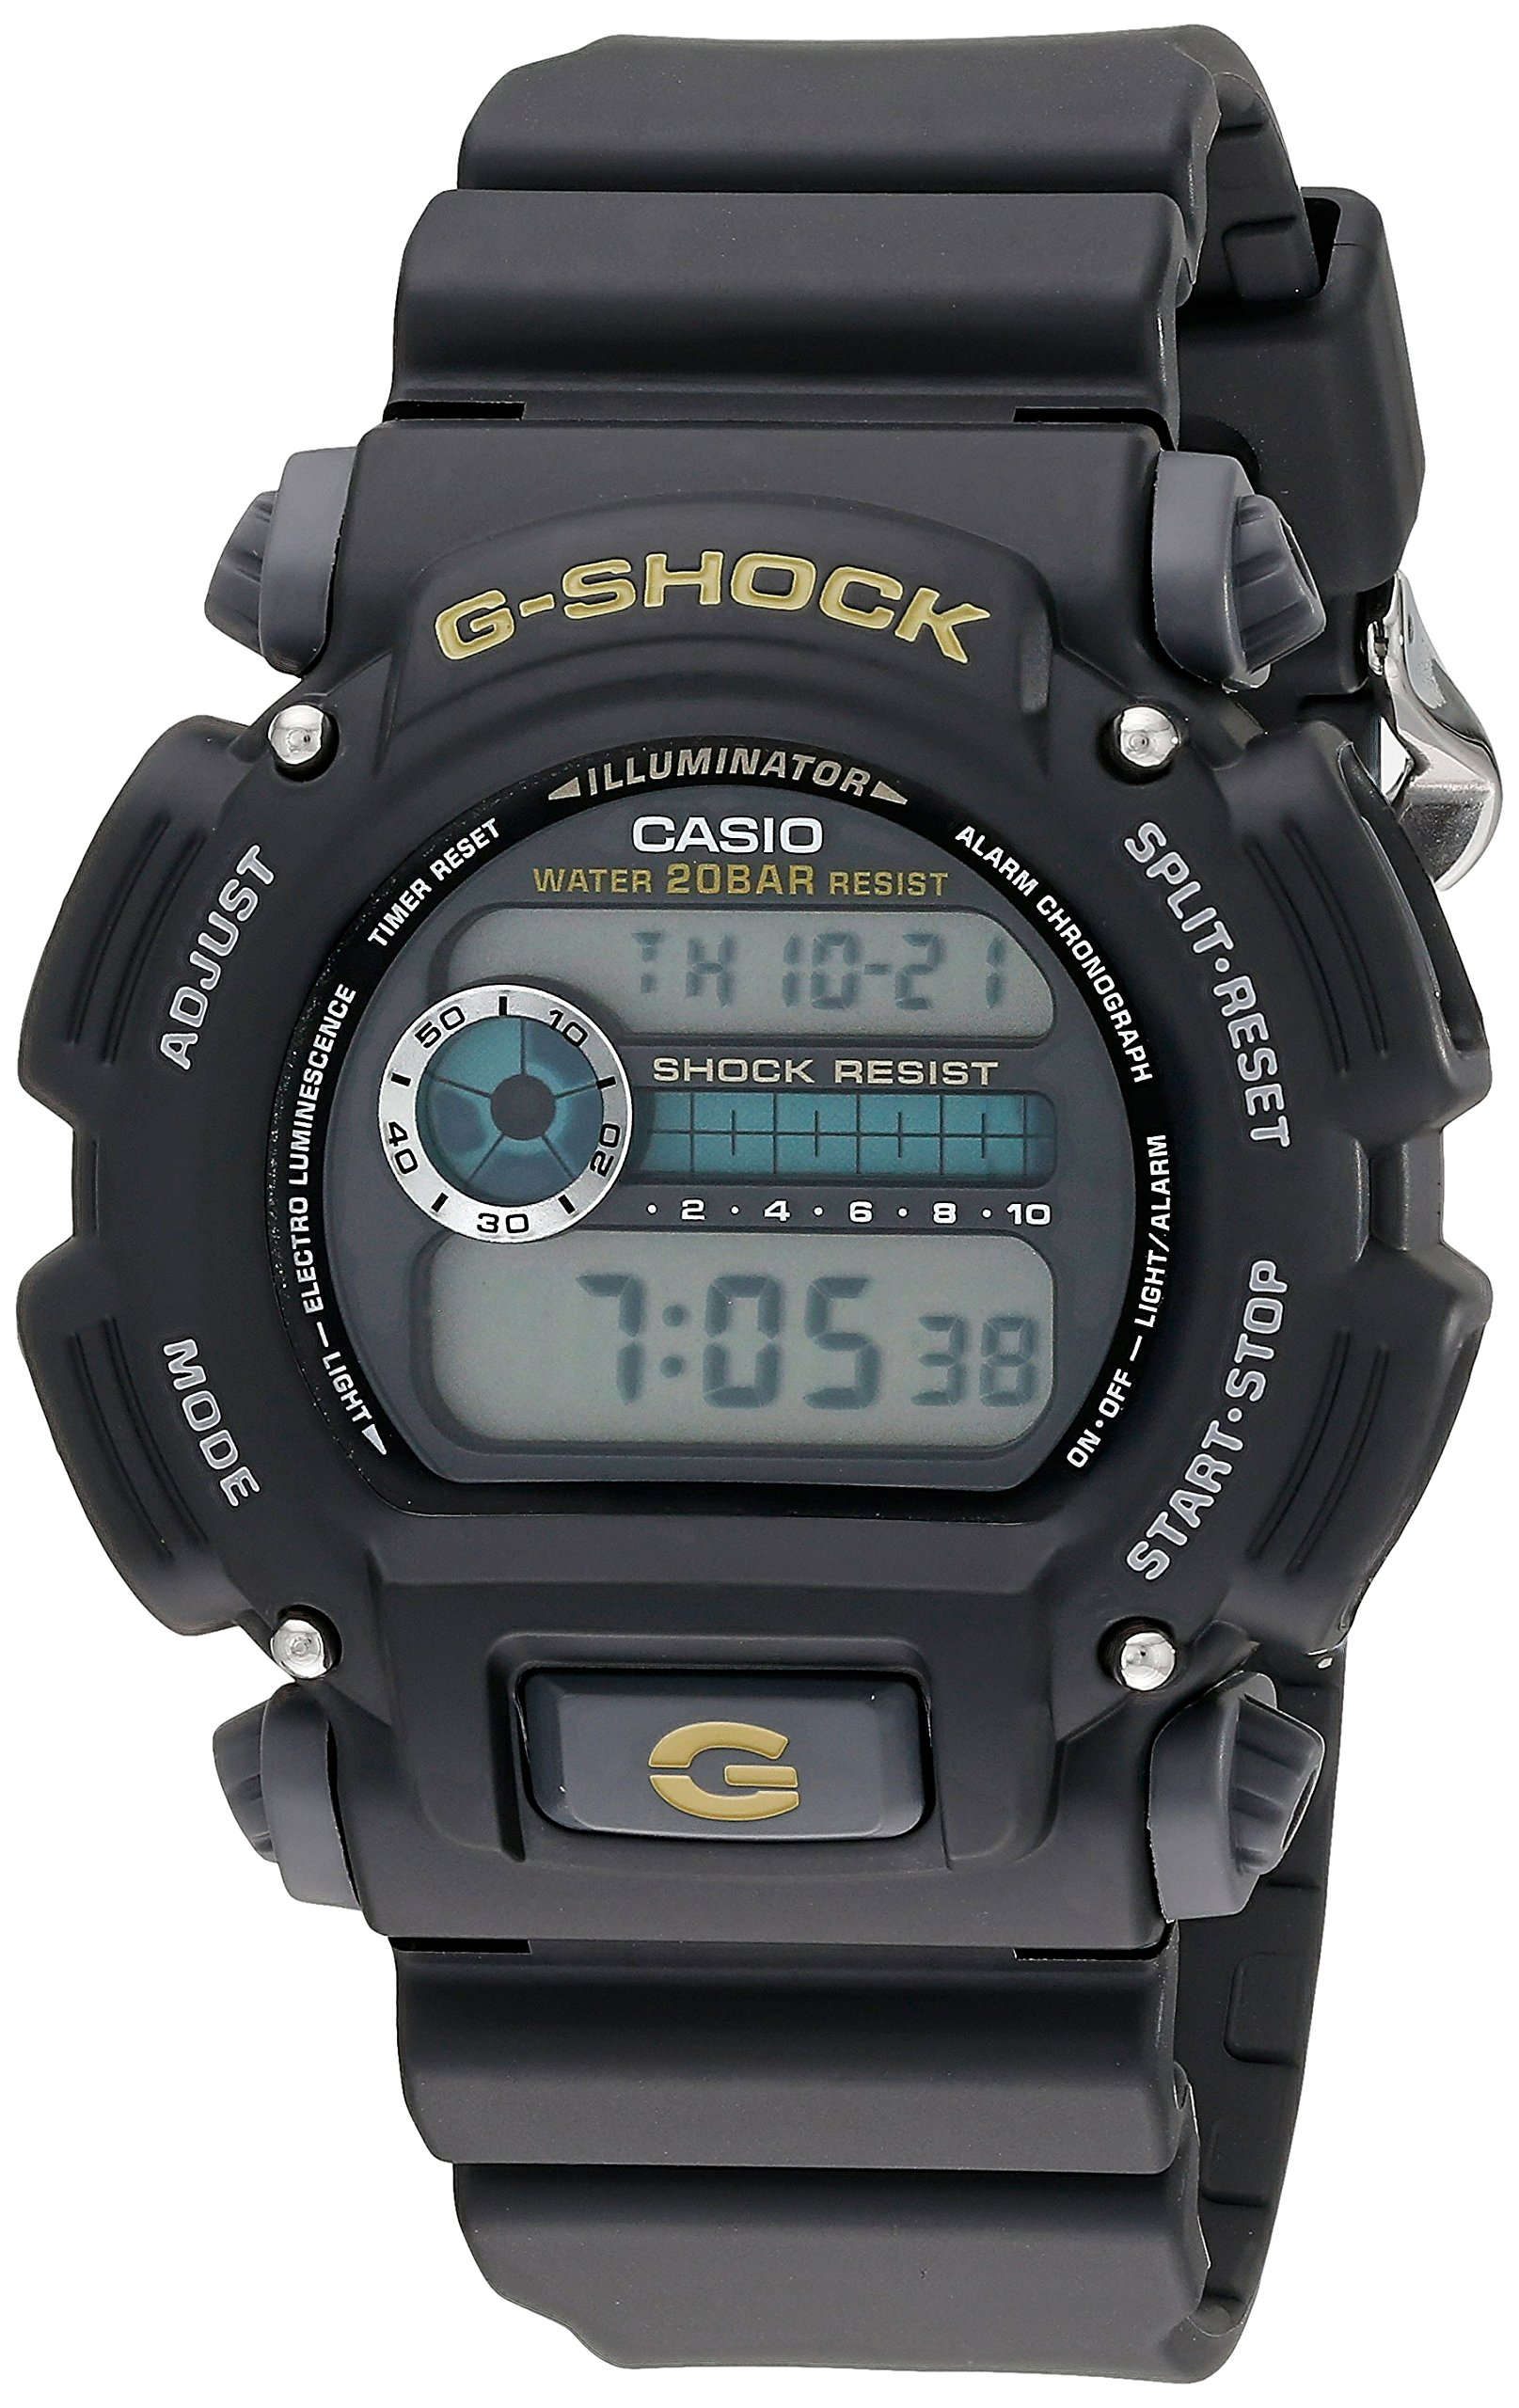 watch s watches reviews amazon pcr best men sport rated luminous com helpful casio in customer